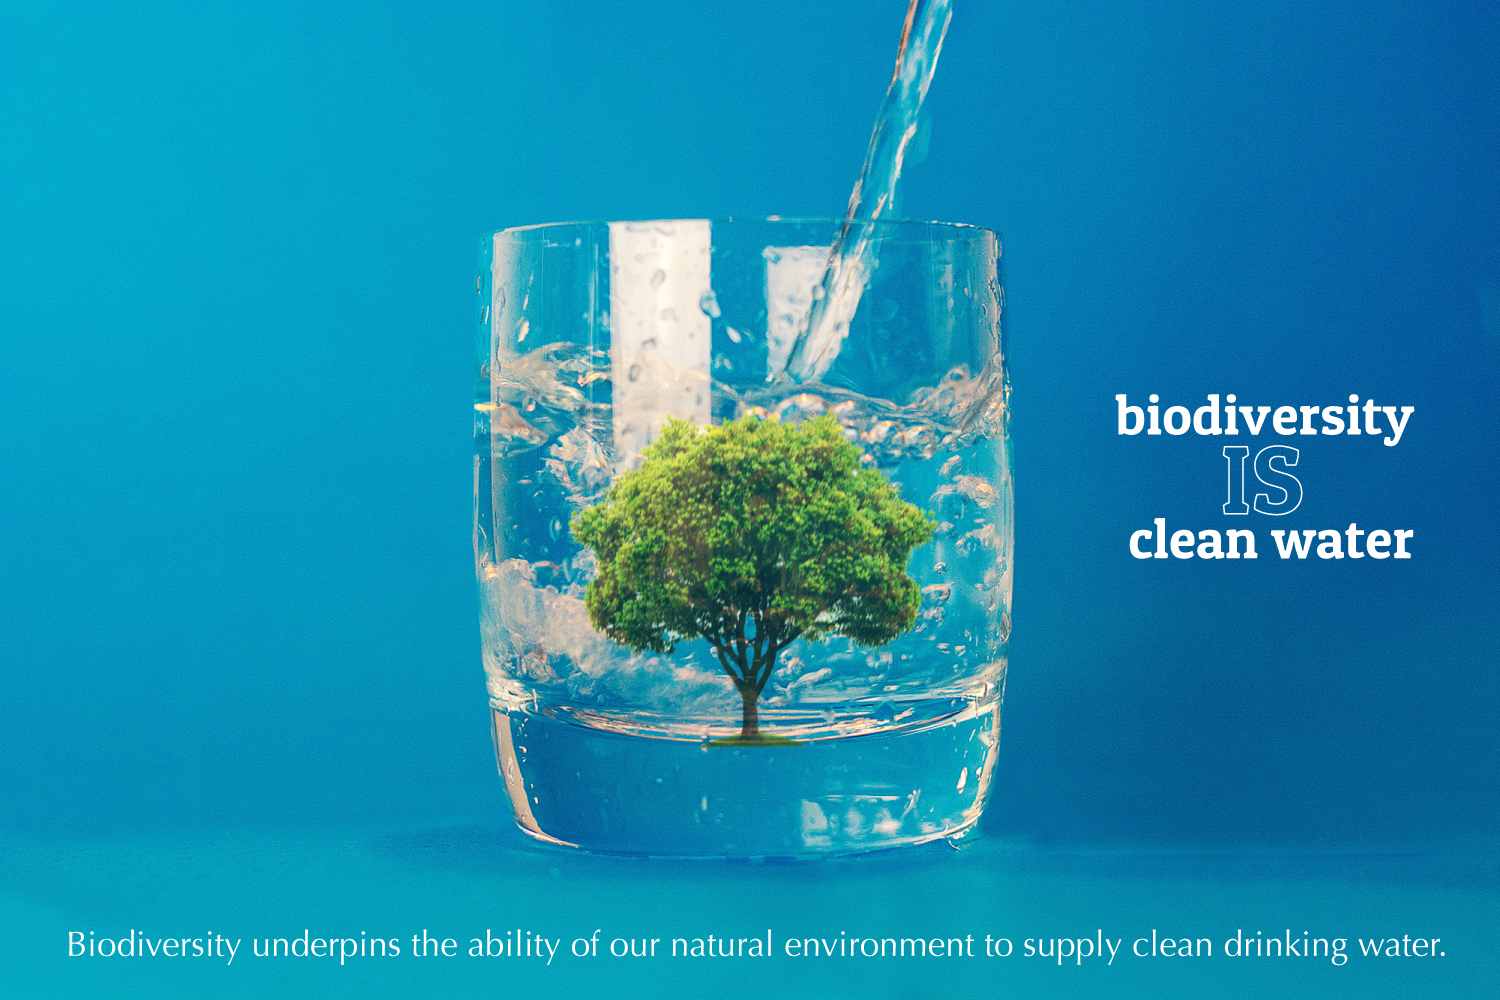 biodiversity is clean water: a tree inside a glass of water